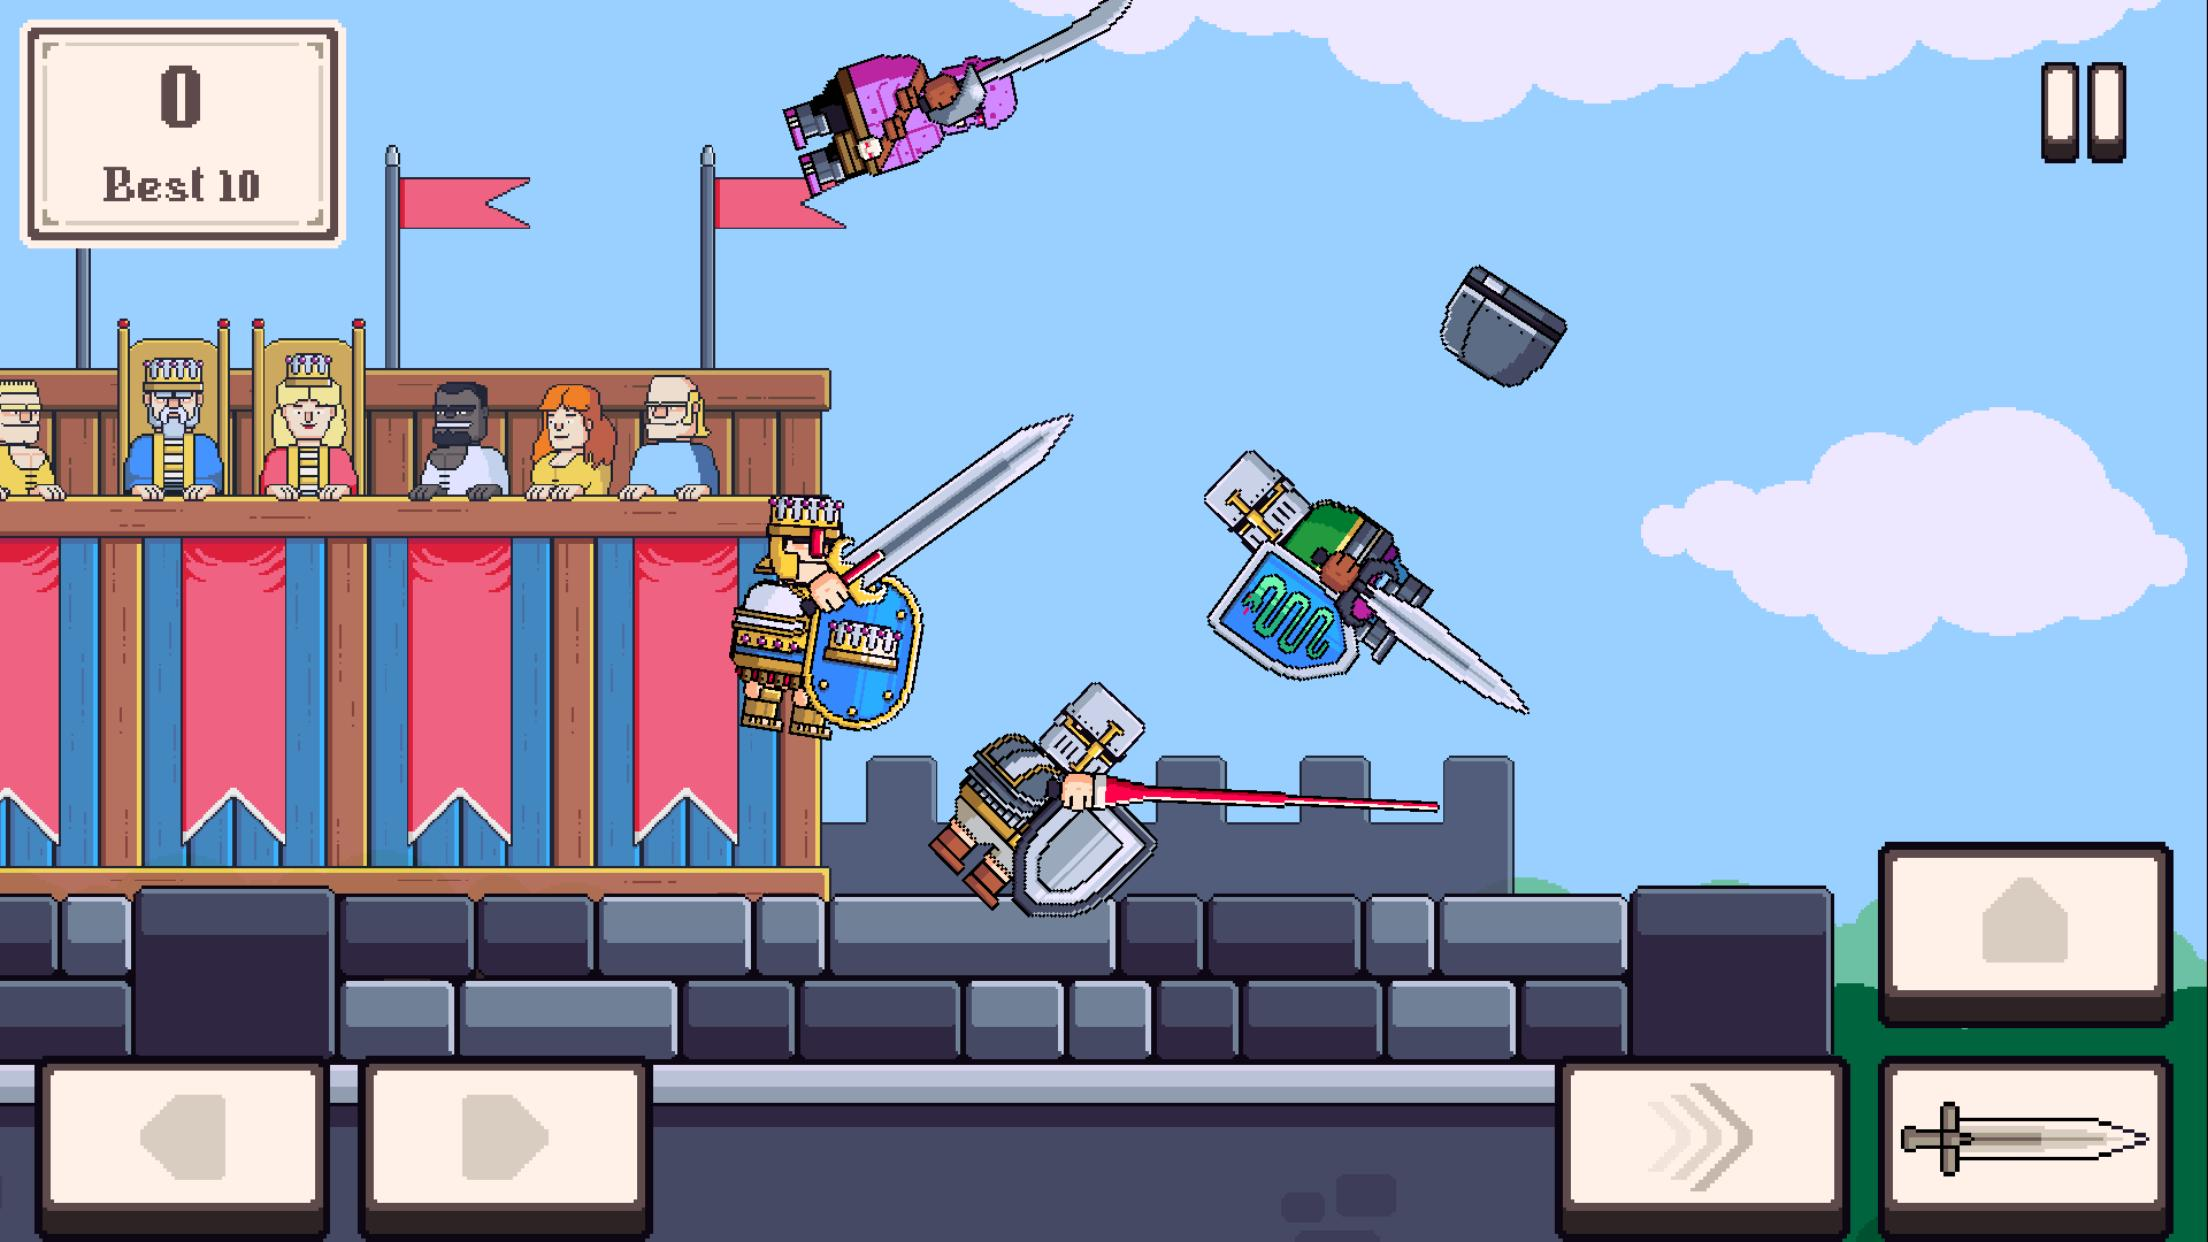 Knight Brawl for Android - APK Download